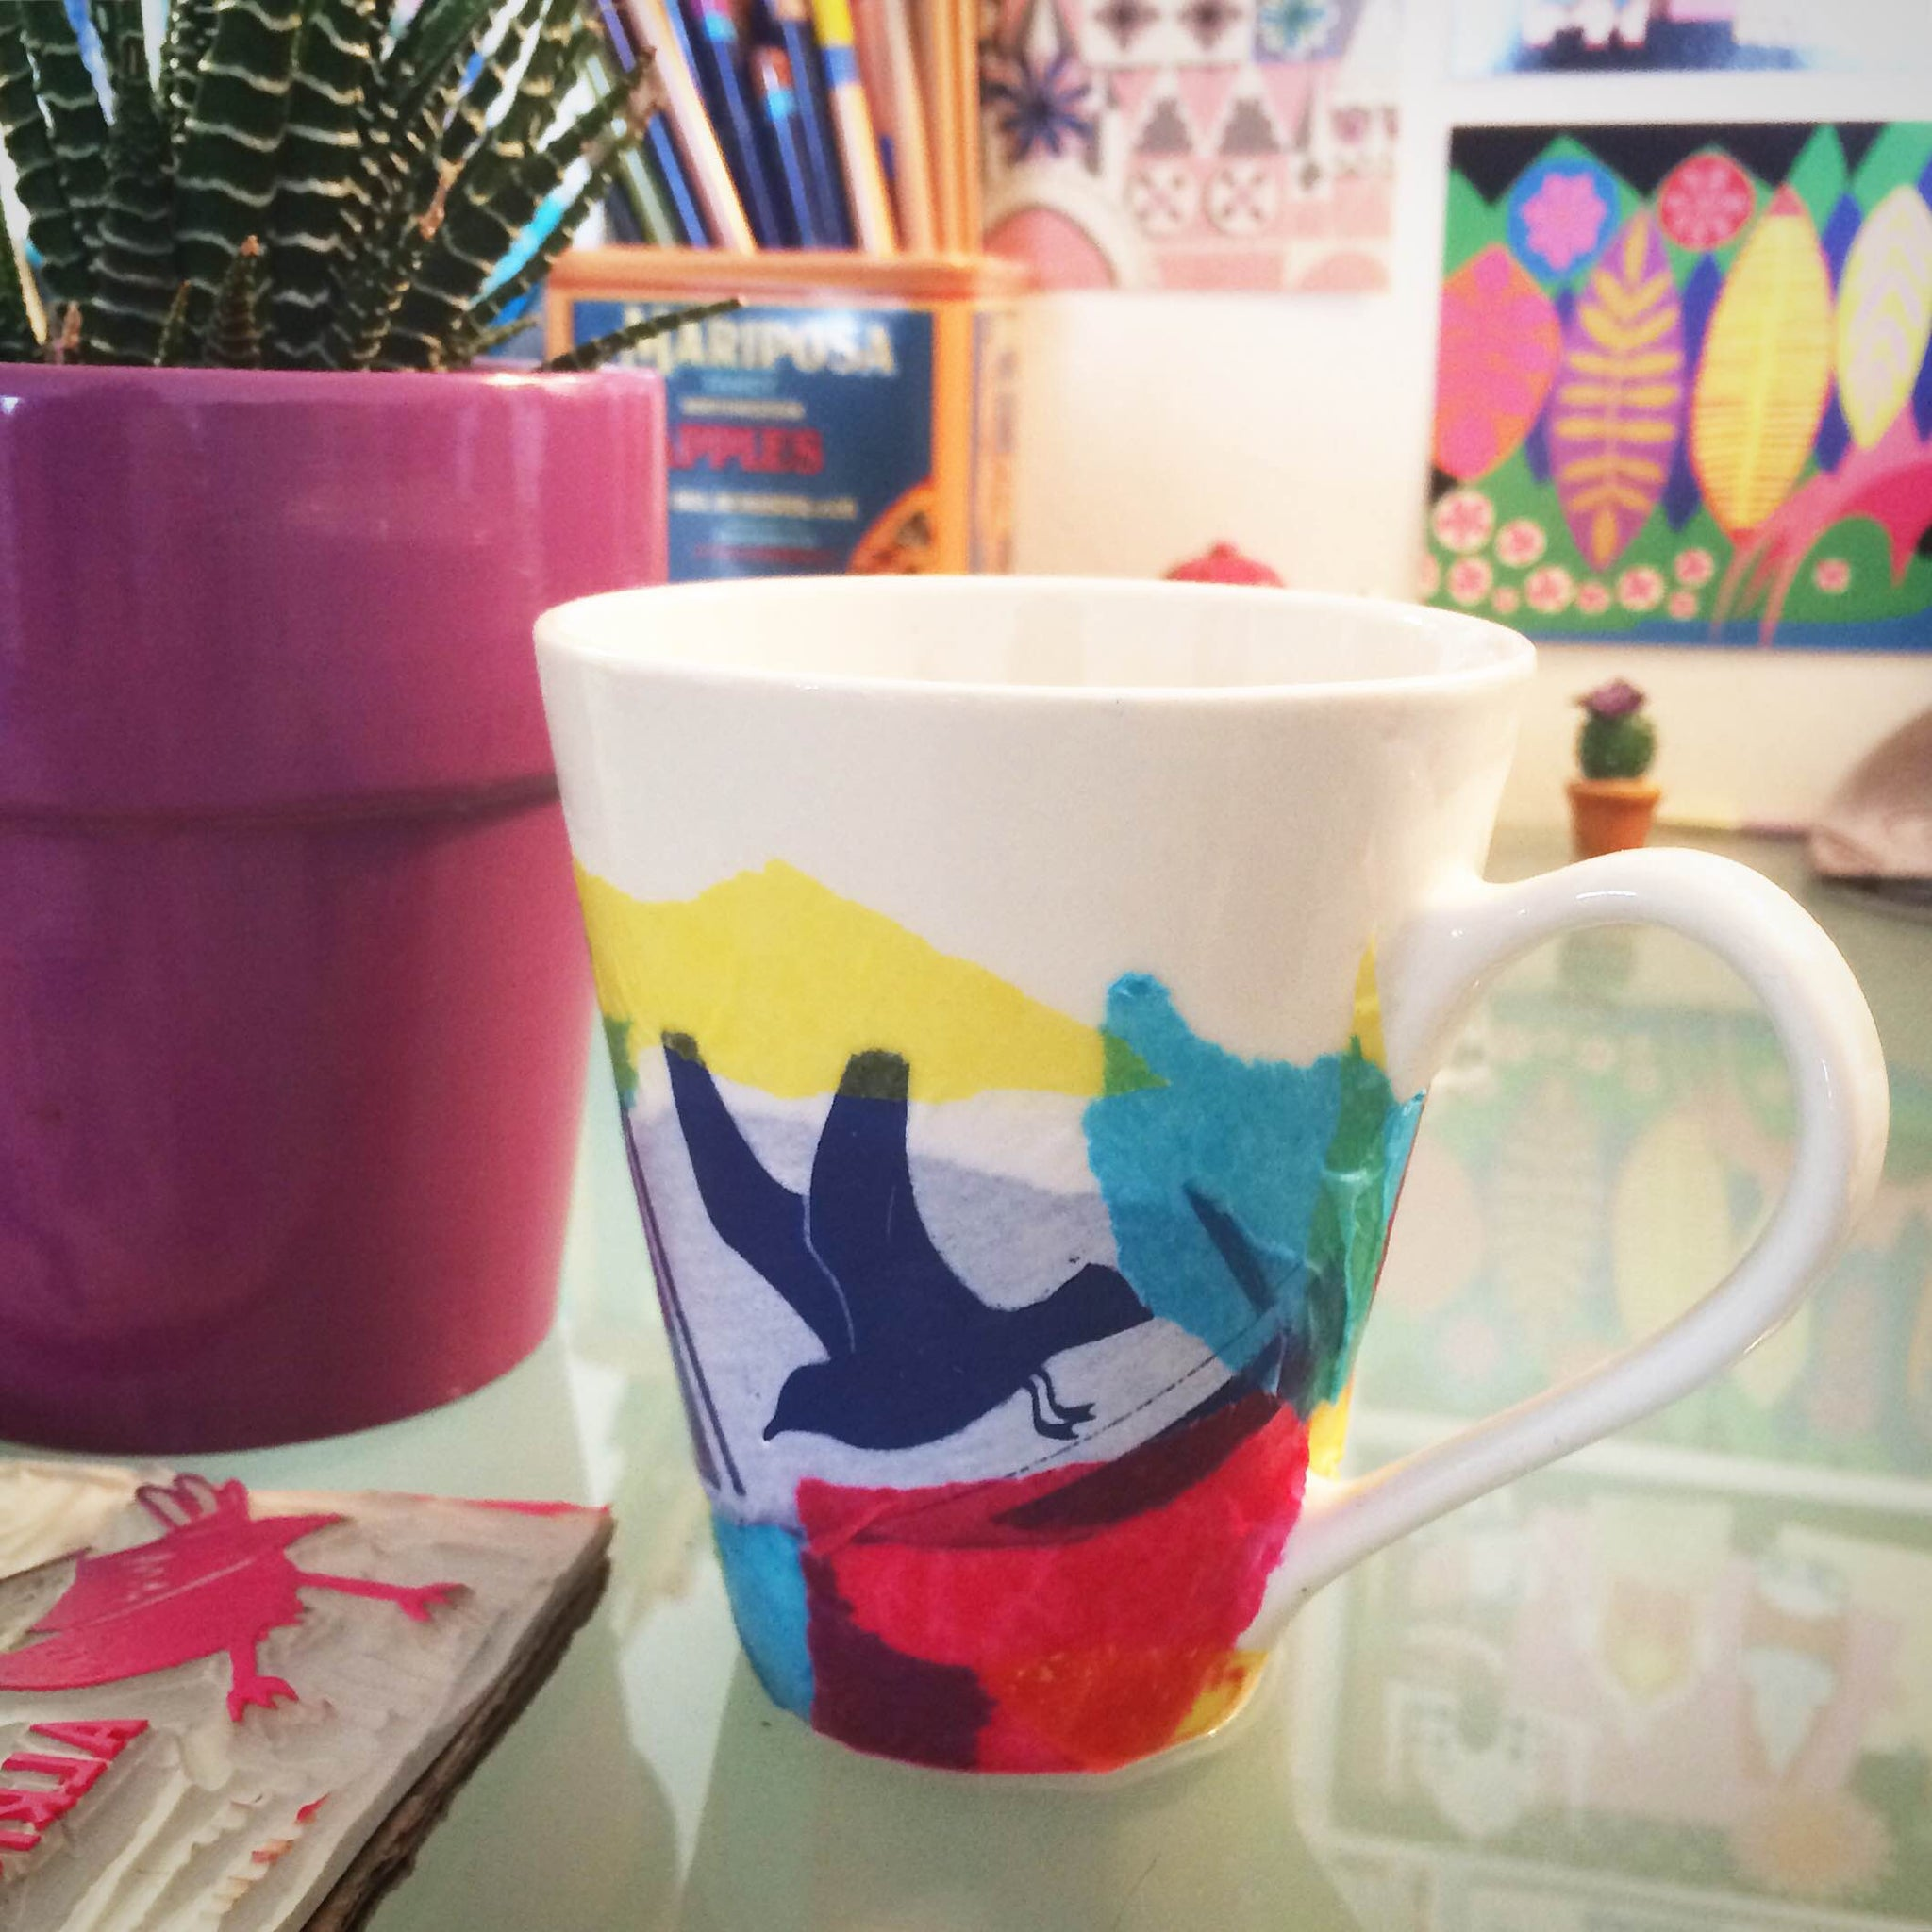 CRAFTERNOON : WATERCOLOR TISSUE MUGS